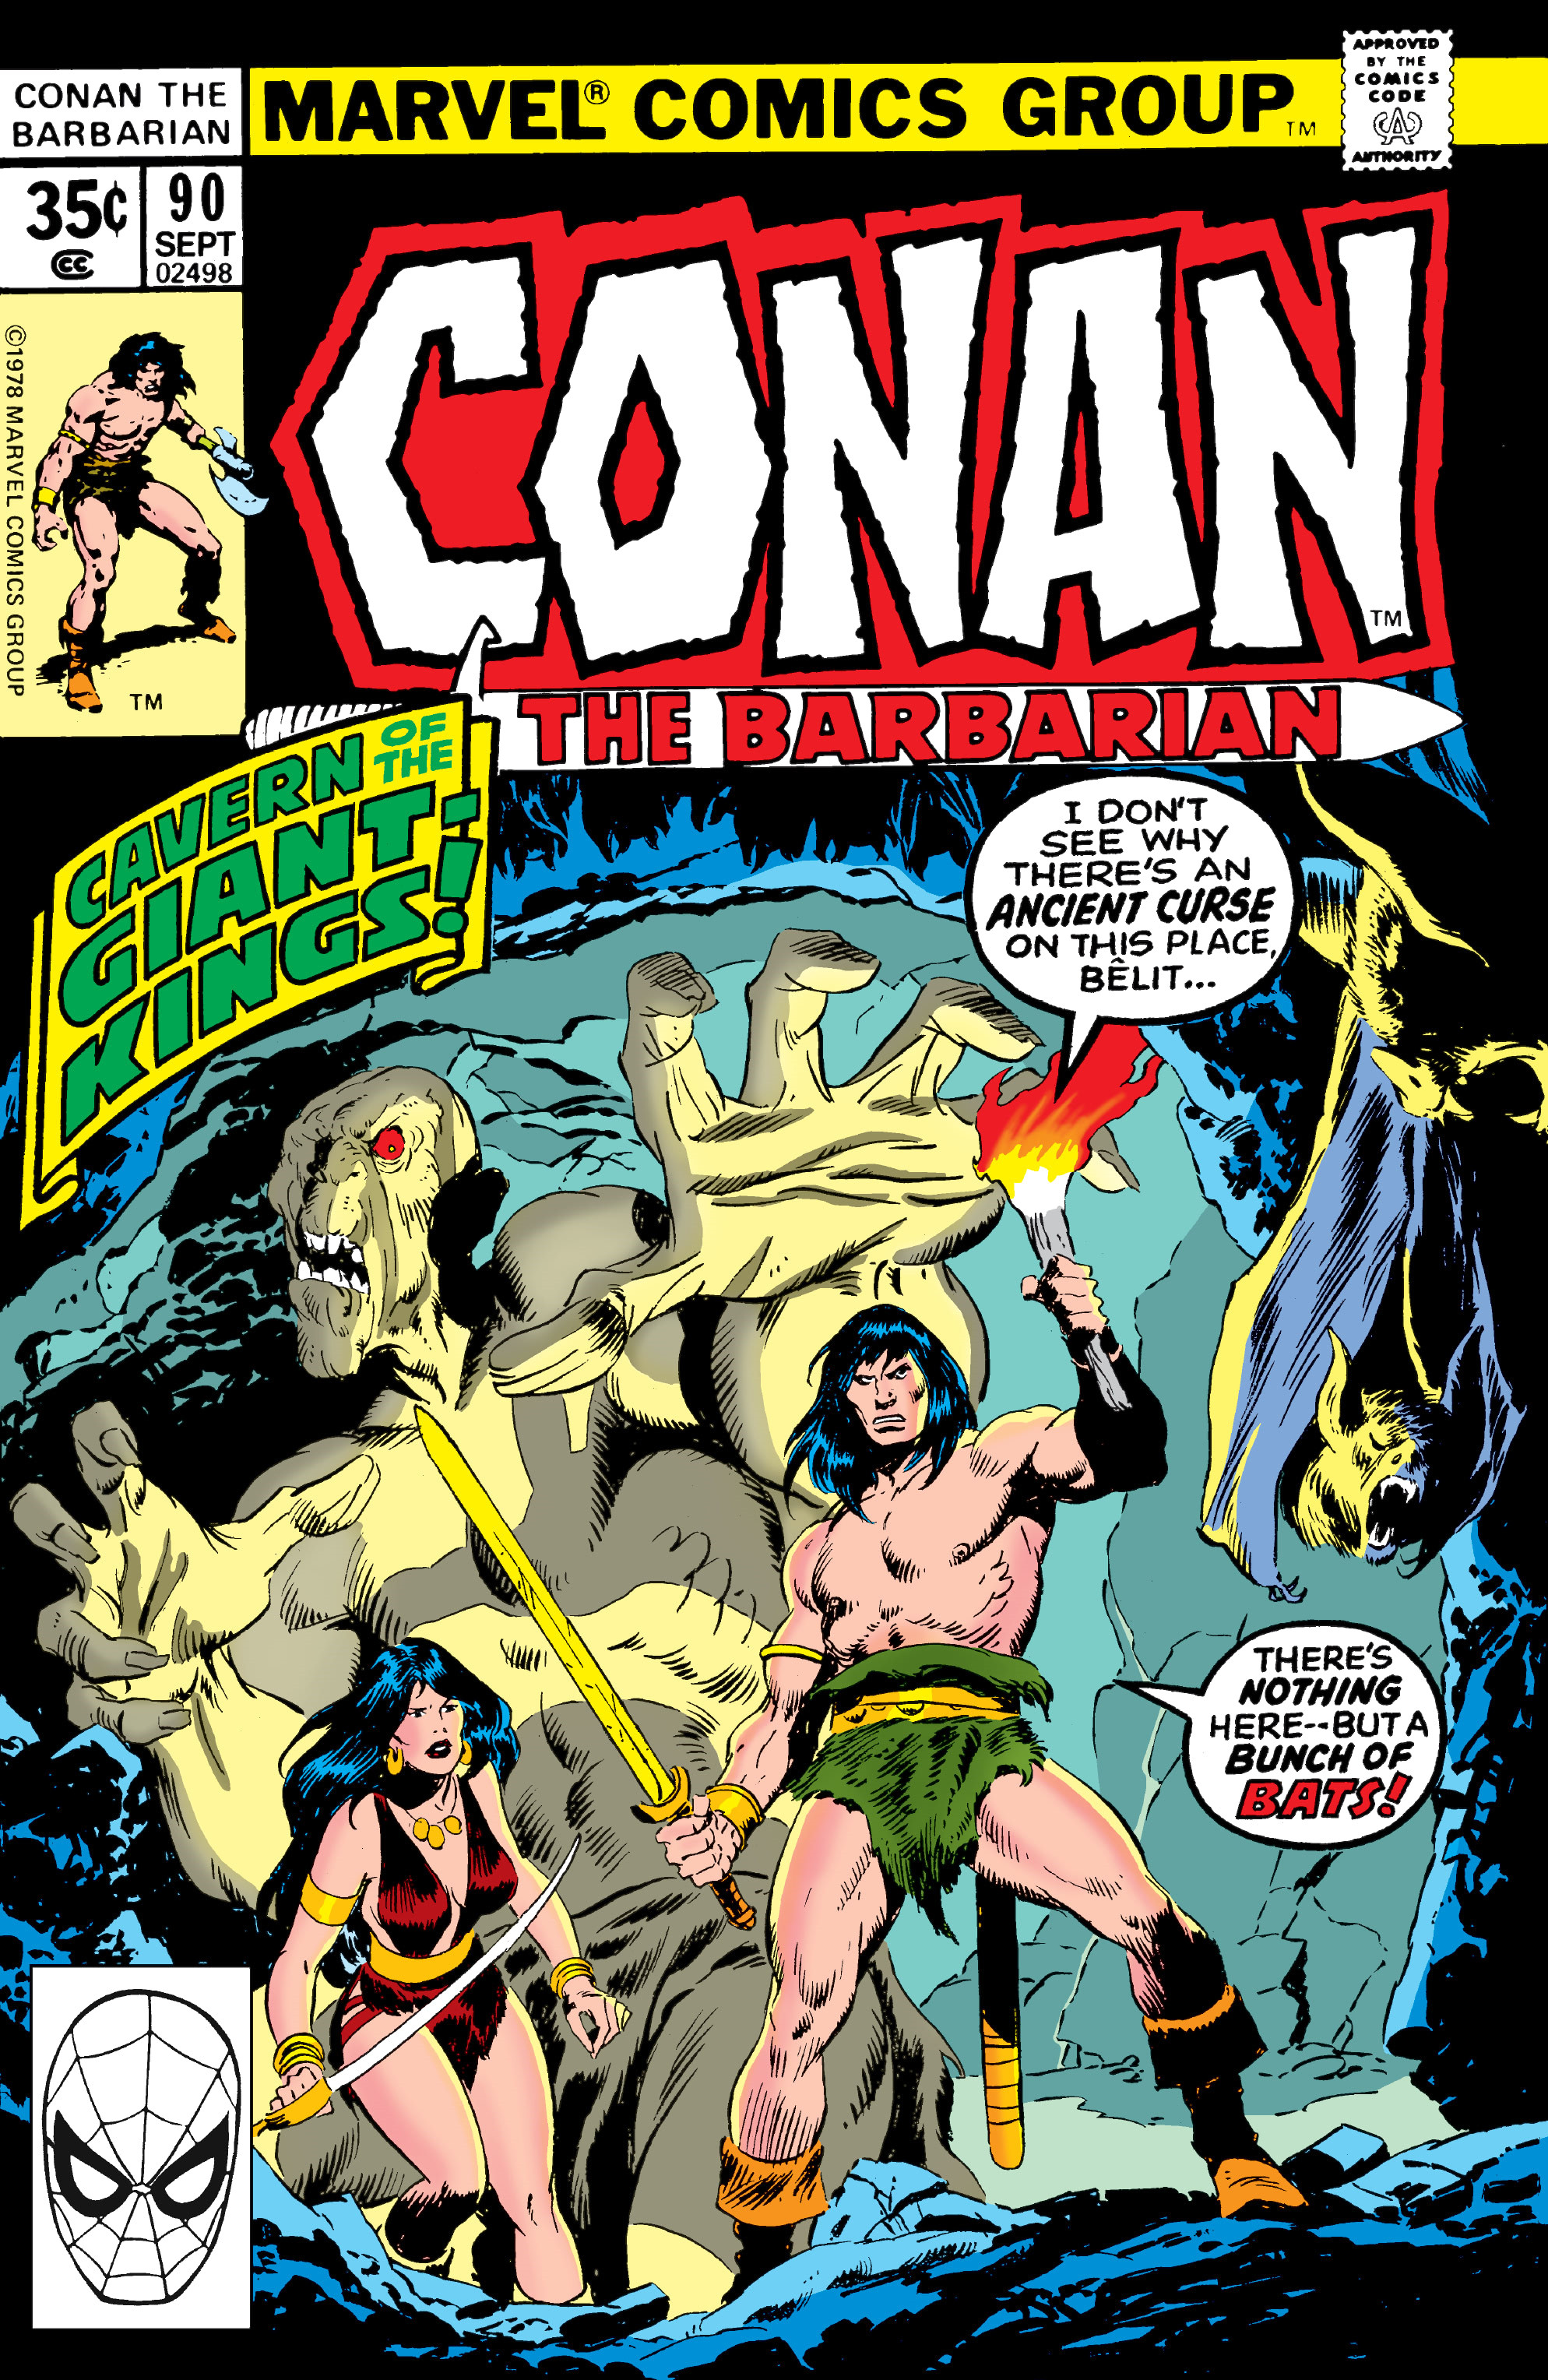 Conan the Barbarian Vol 1 90